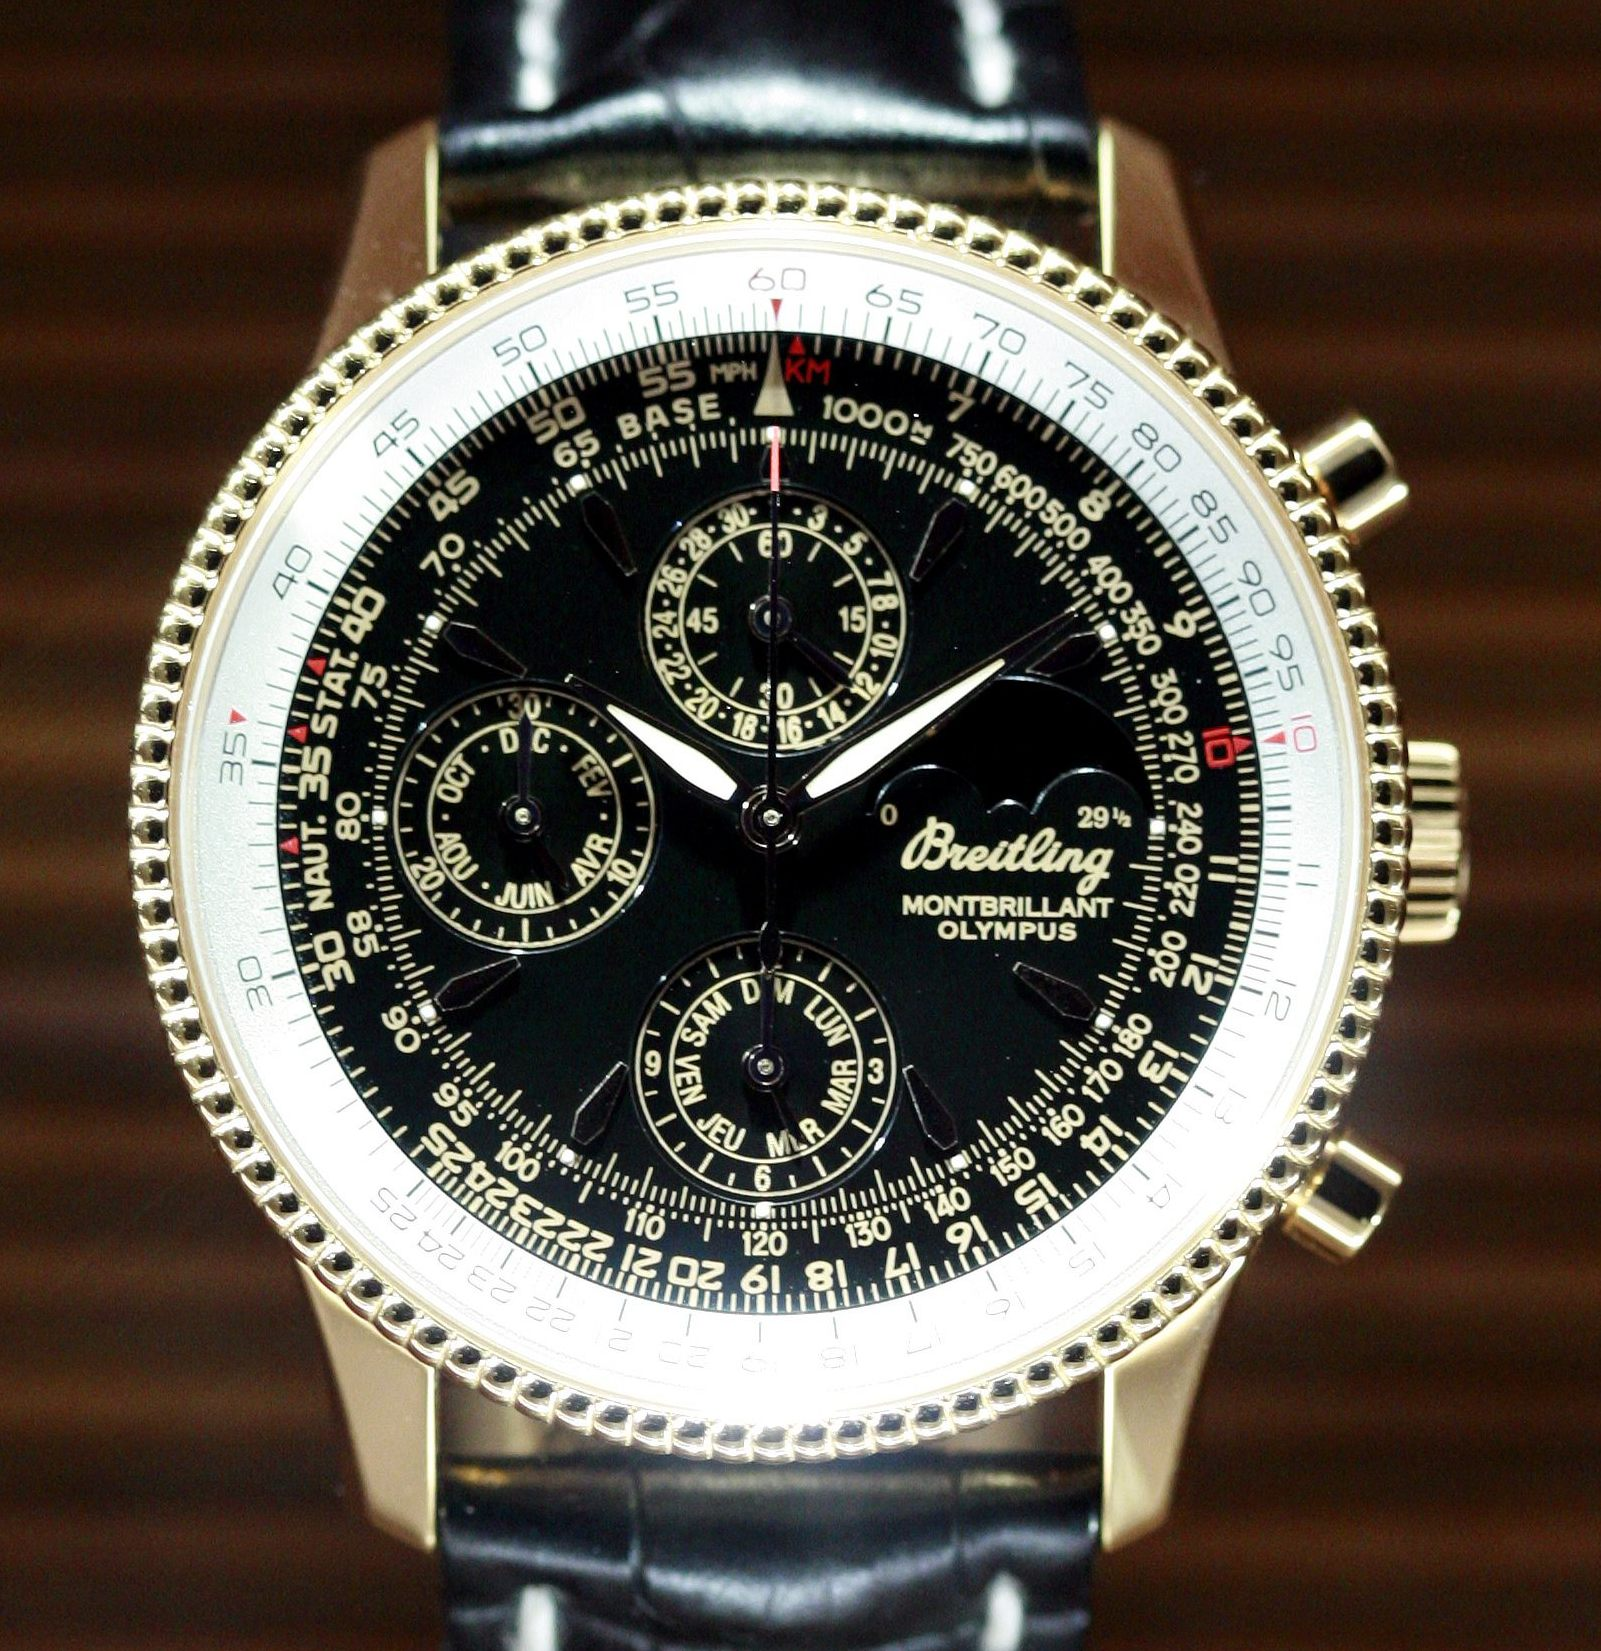 The Breitling watches